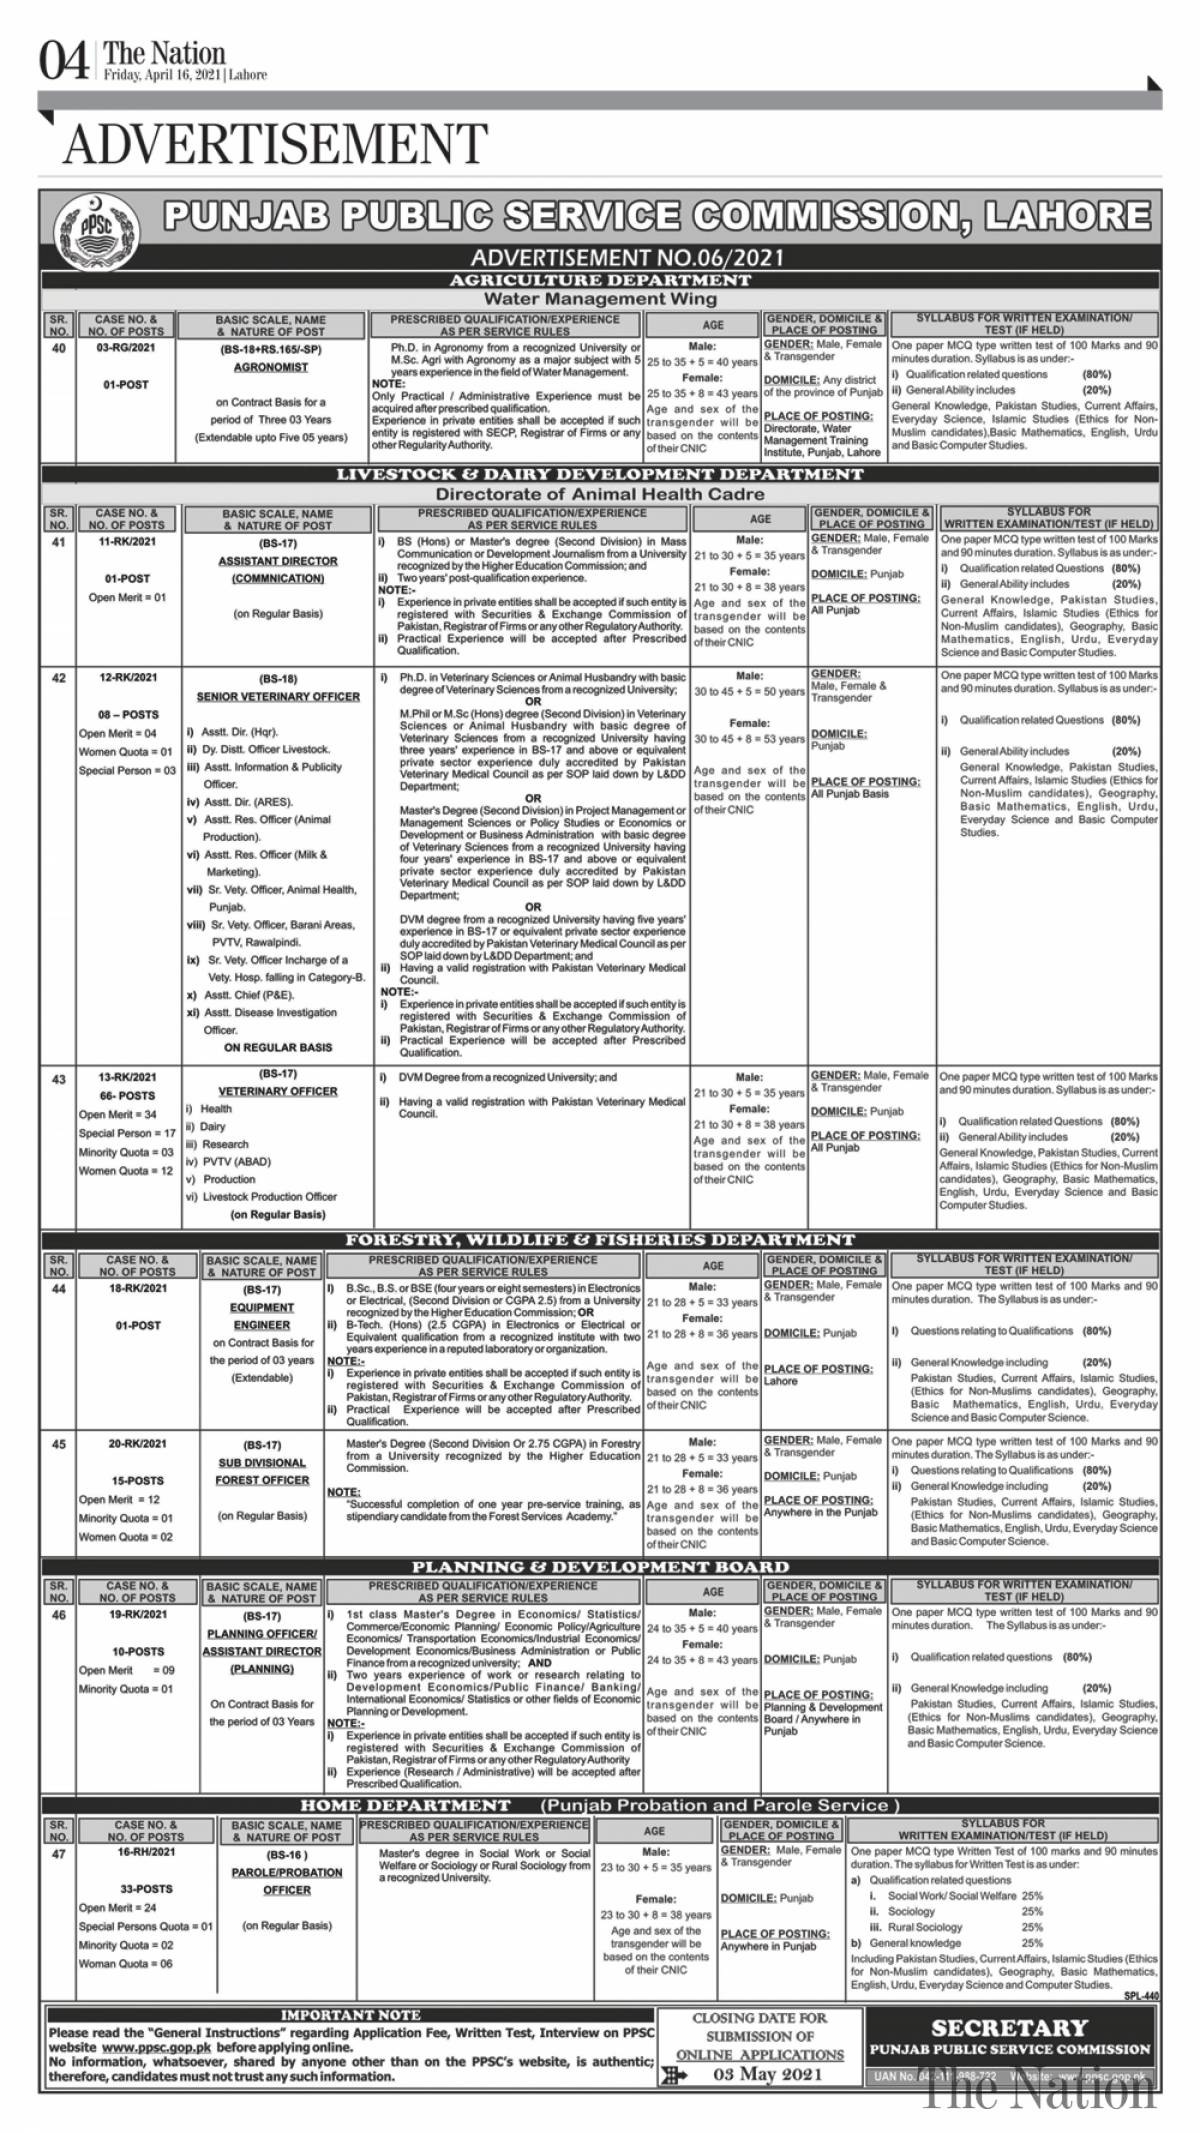 PPSC Jobs 2021 Advertisement No. 06 in Lahore